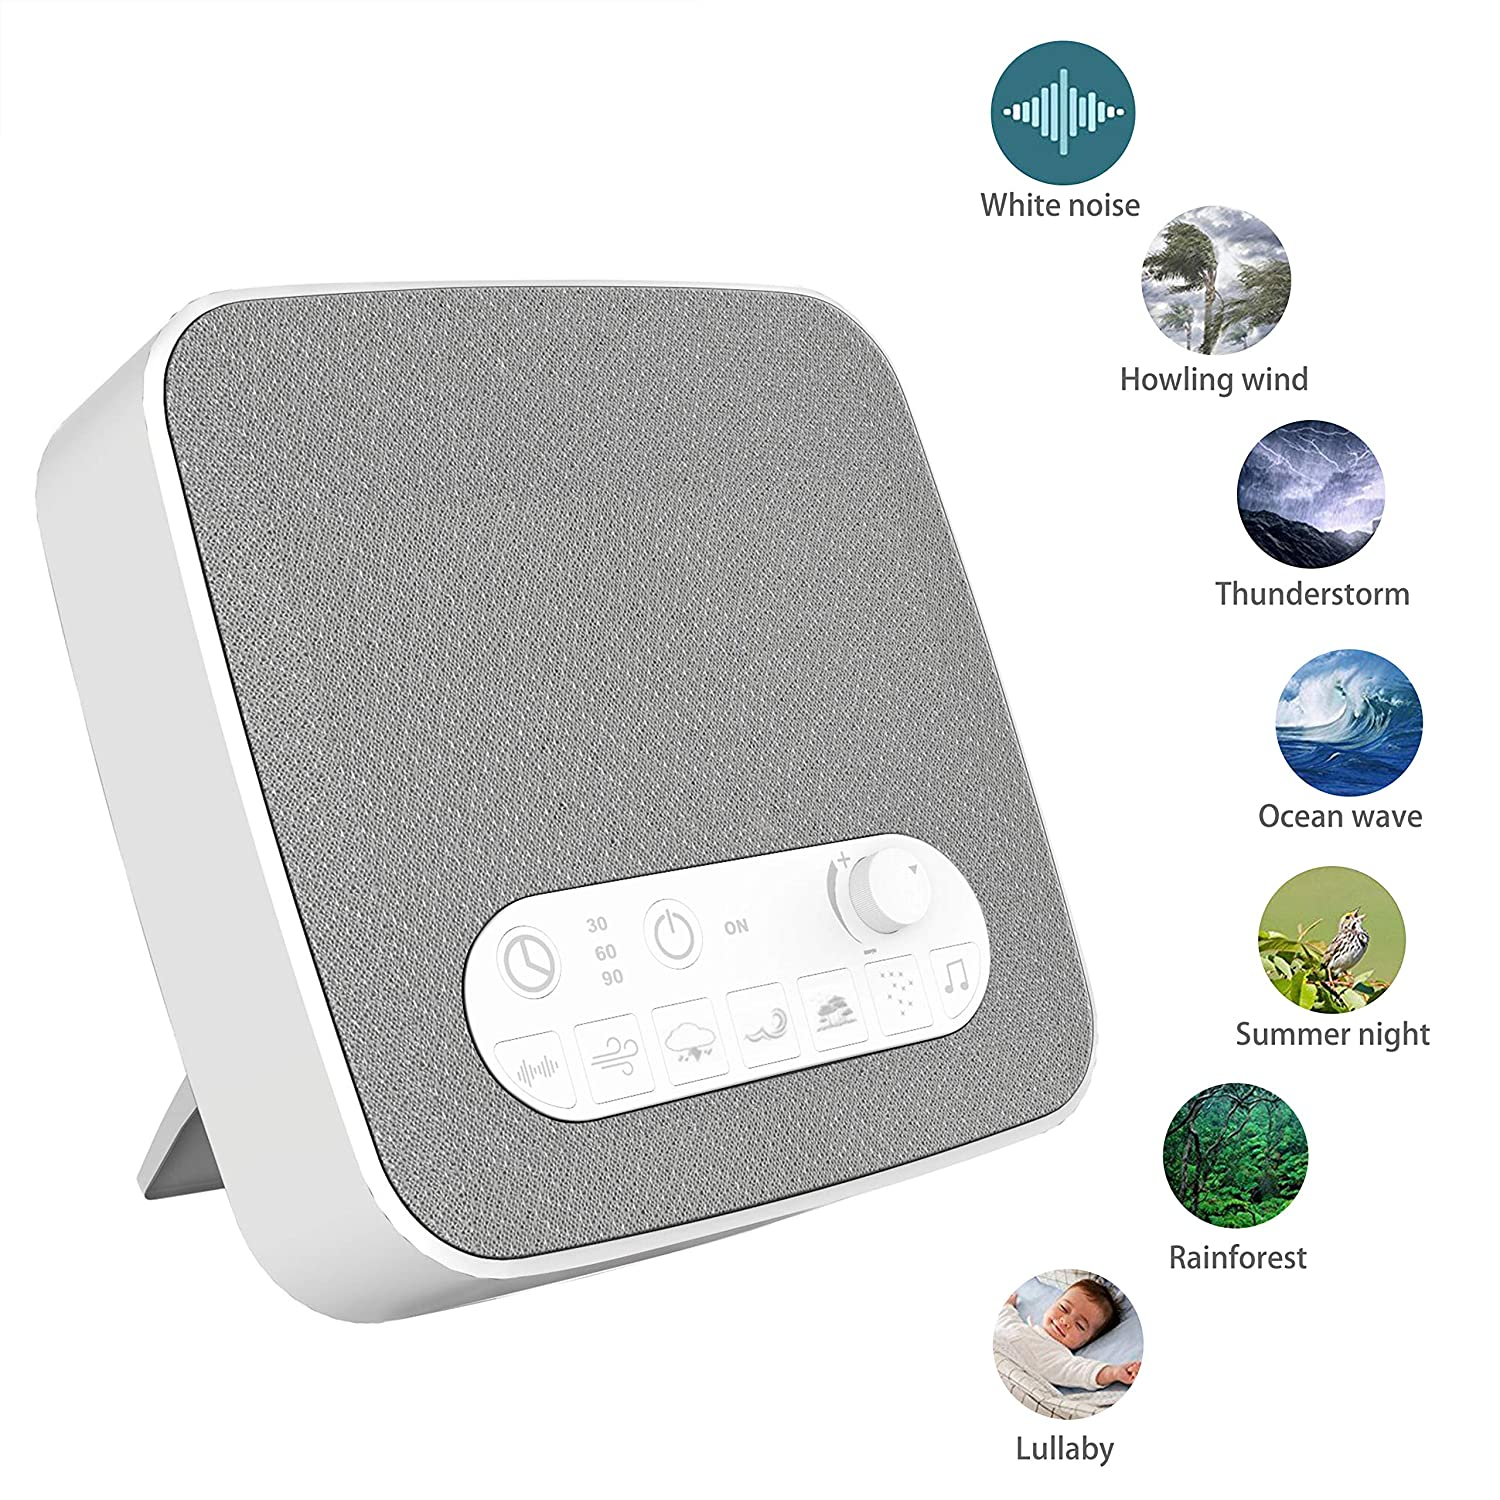 Ovitus S9 White Noise Sleep Sound Machine With Wireless Charging and Bluetooth Audio Playing Functions, 10 Mixable Natural Soothing Therapy Sounds, Create Custom Sound Effect, Suitable for Baby,Adults